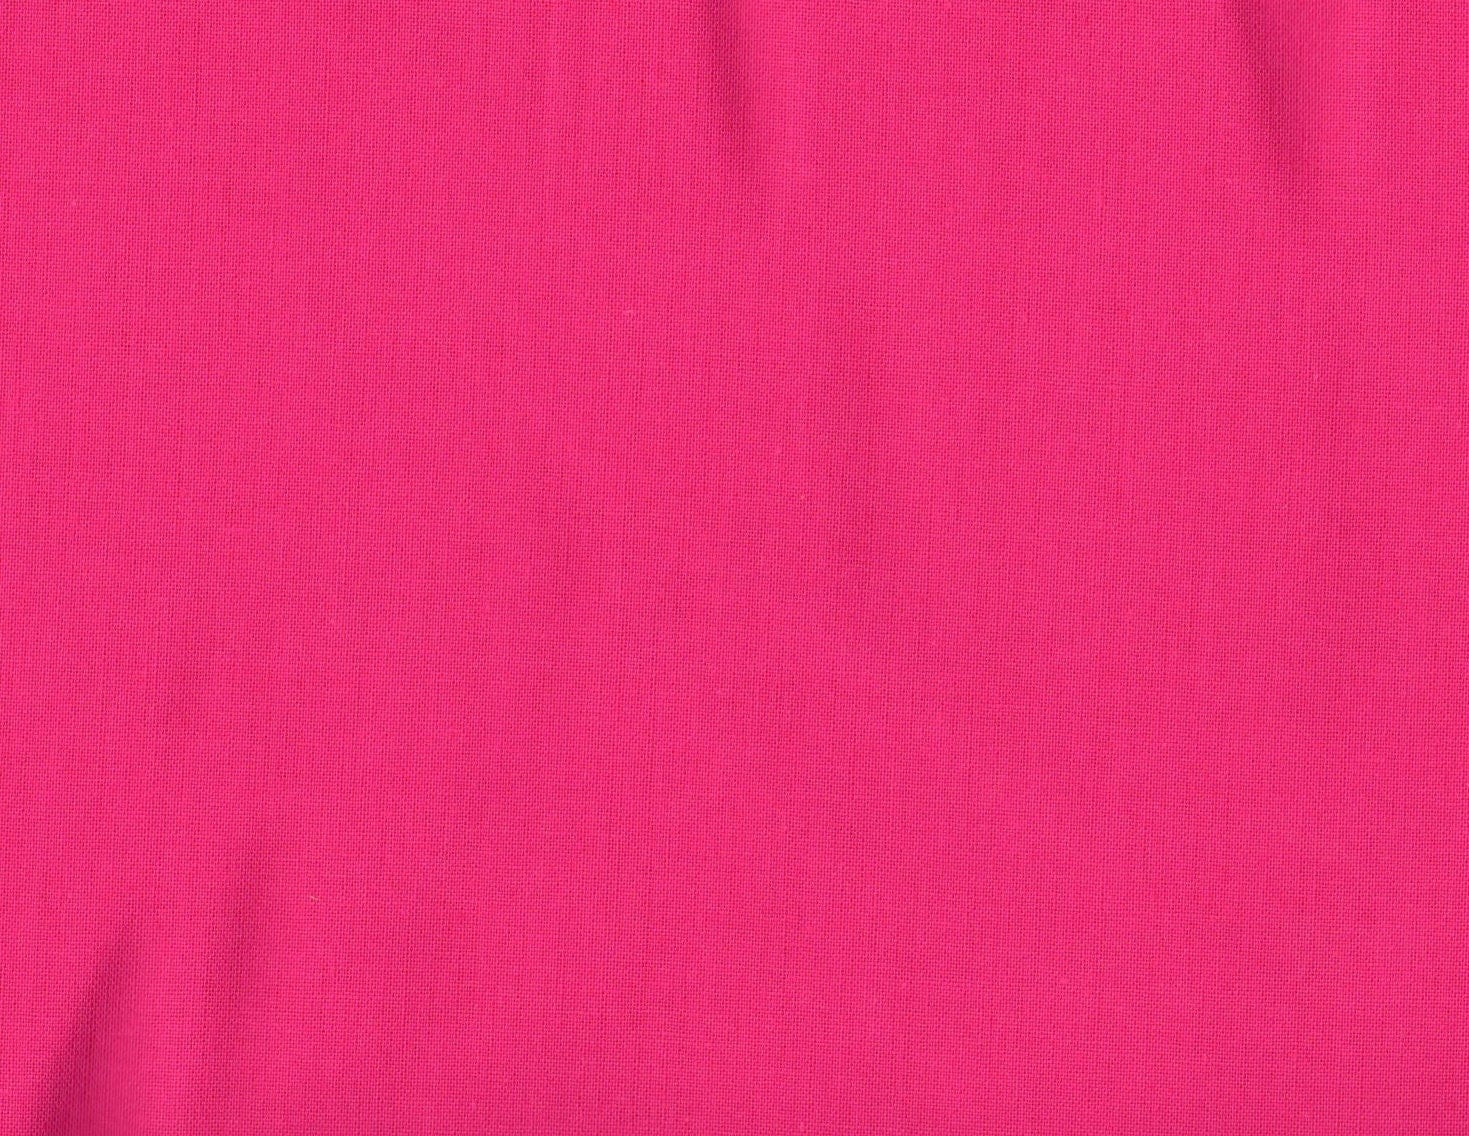 Hot pink fabric pink fabric solid pink fabric flamingo pink for Fabric cloth material